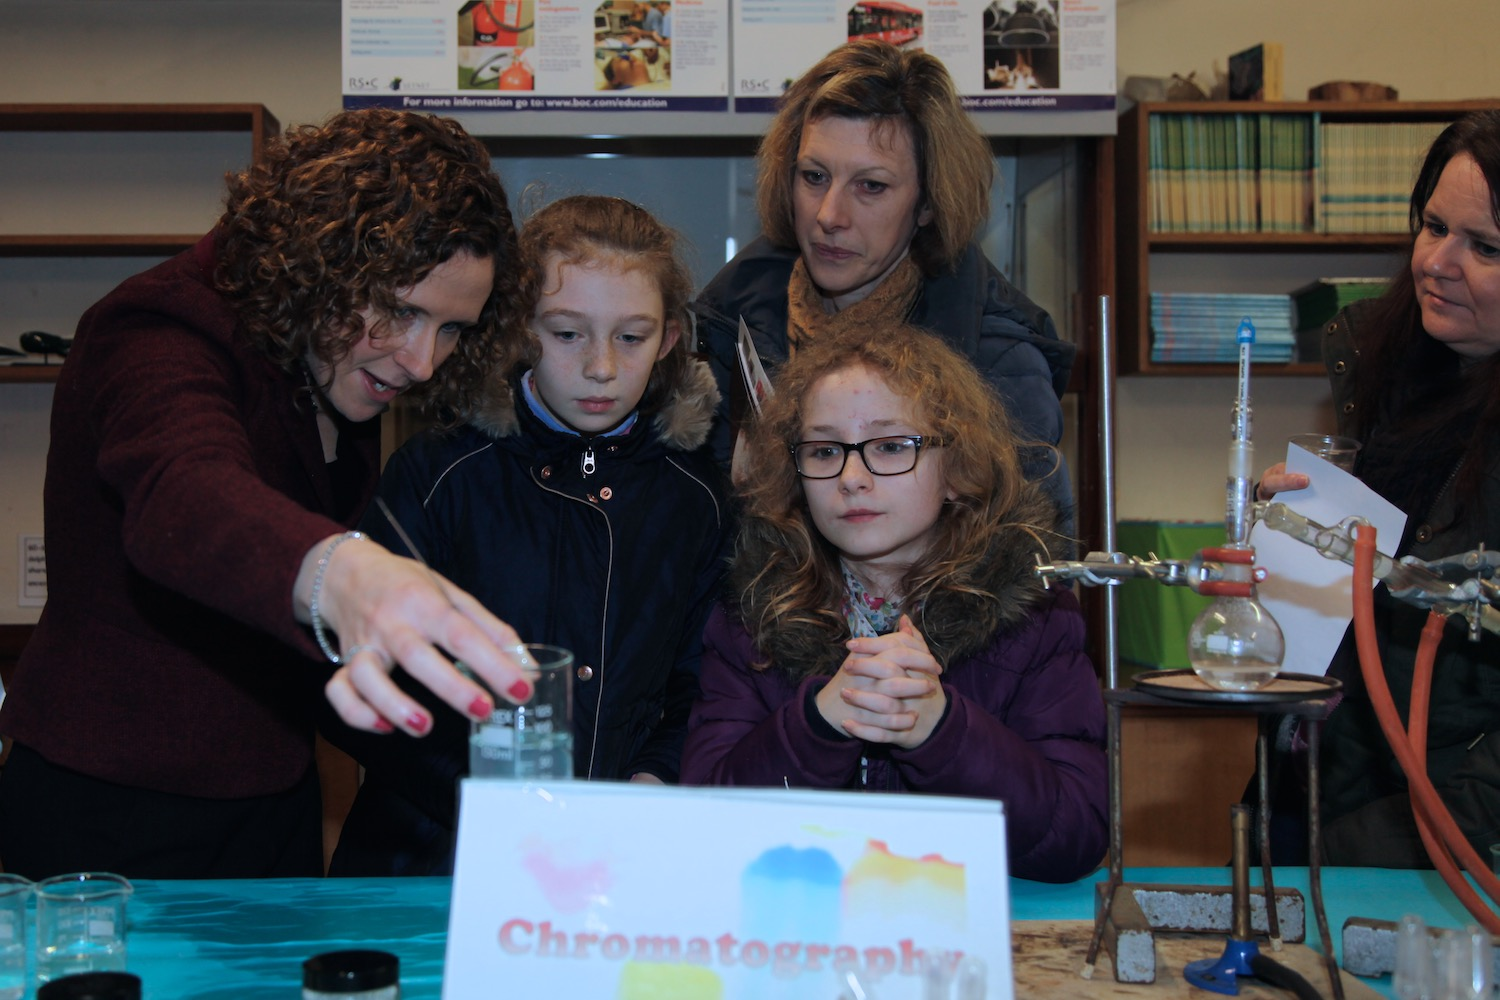 Science experiments on Open Day